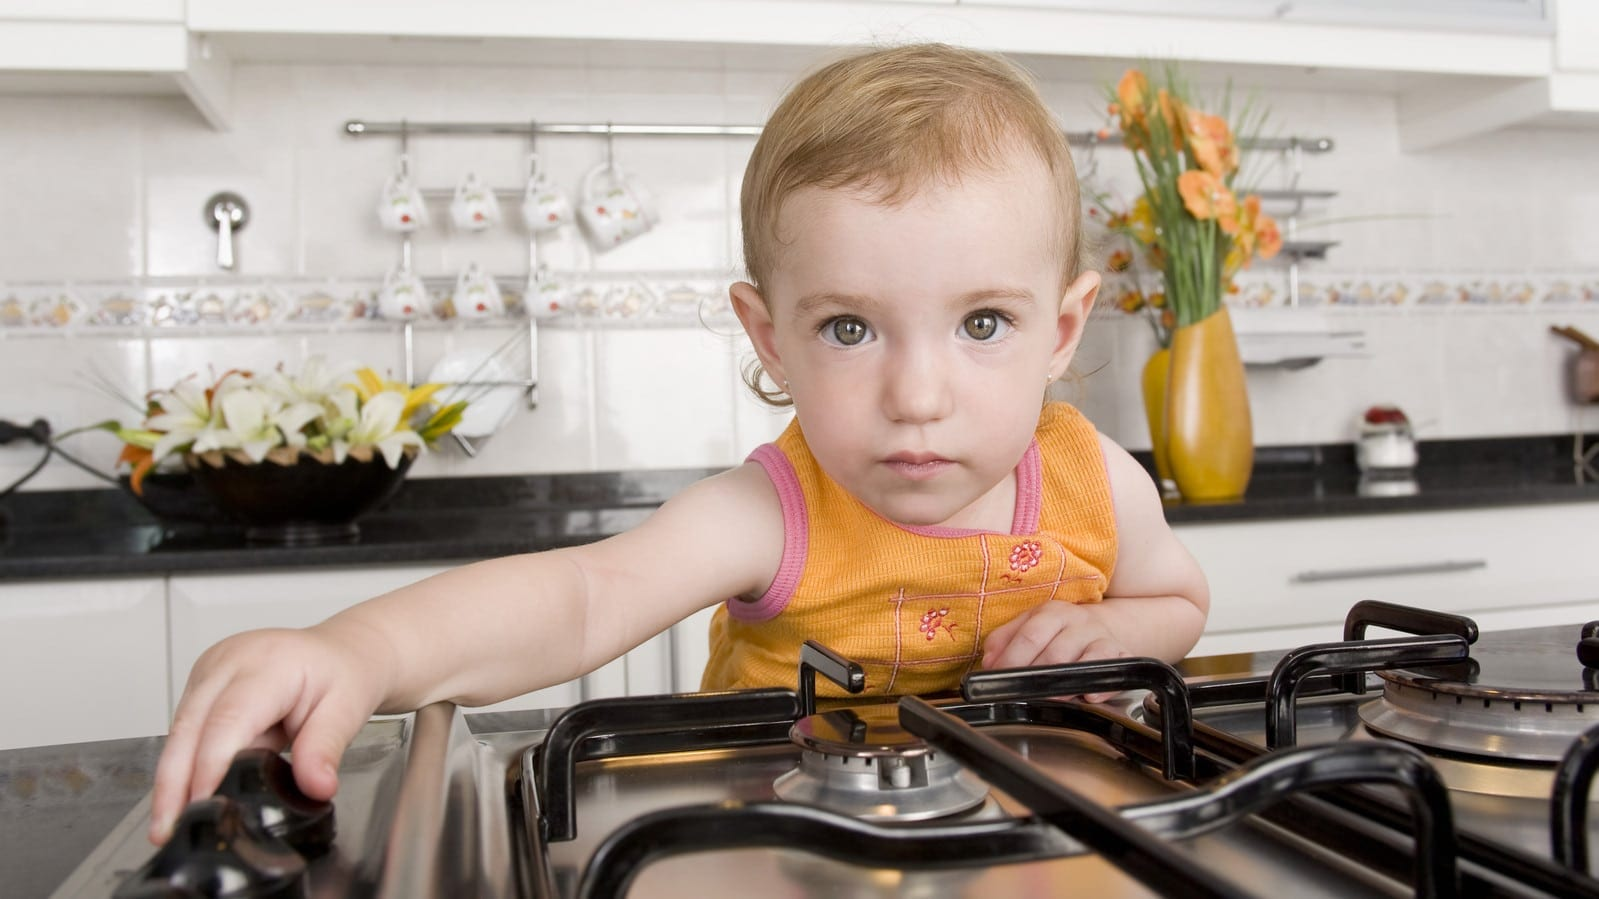 Baby Playing With Switches On Stove Stock Photo